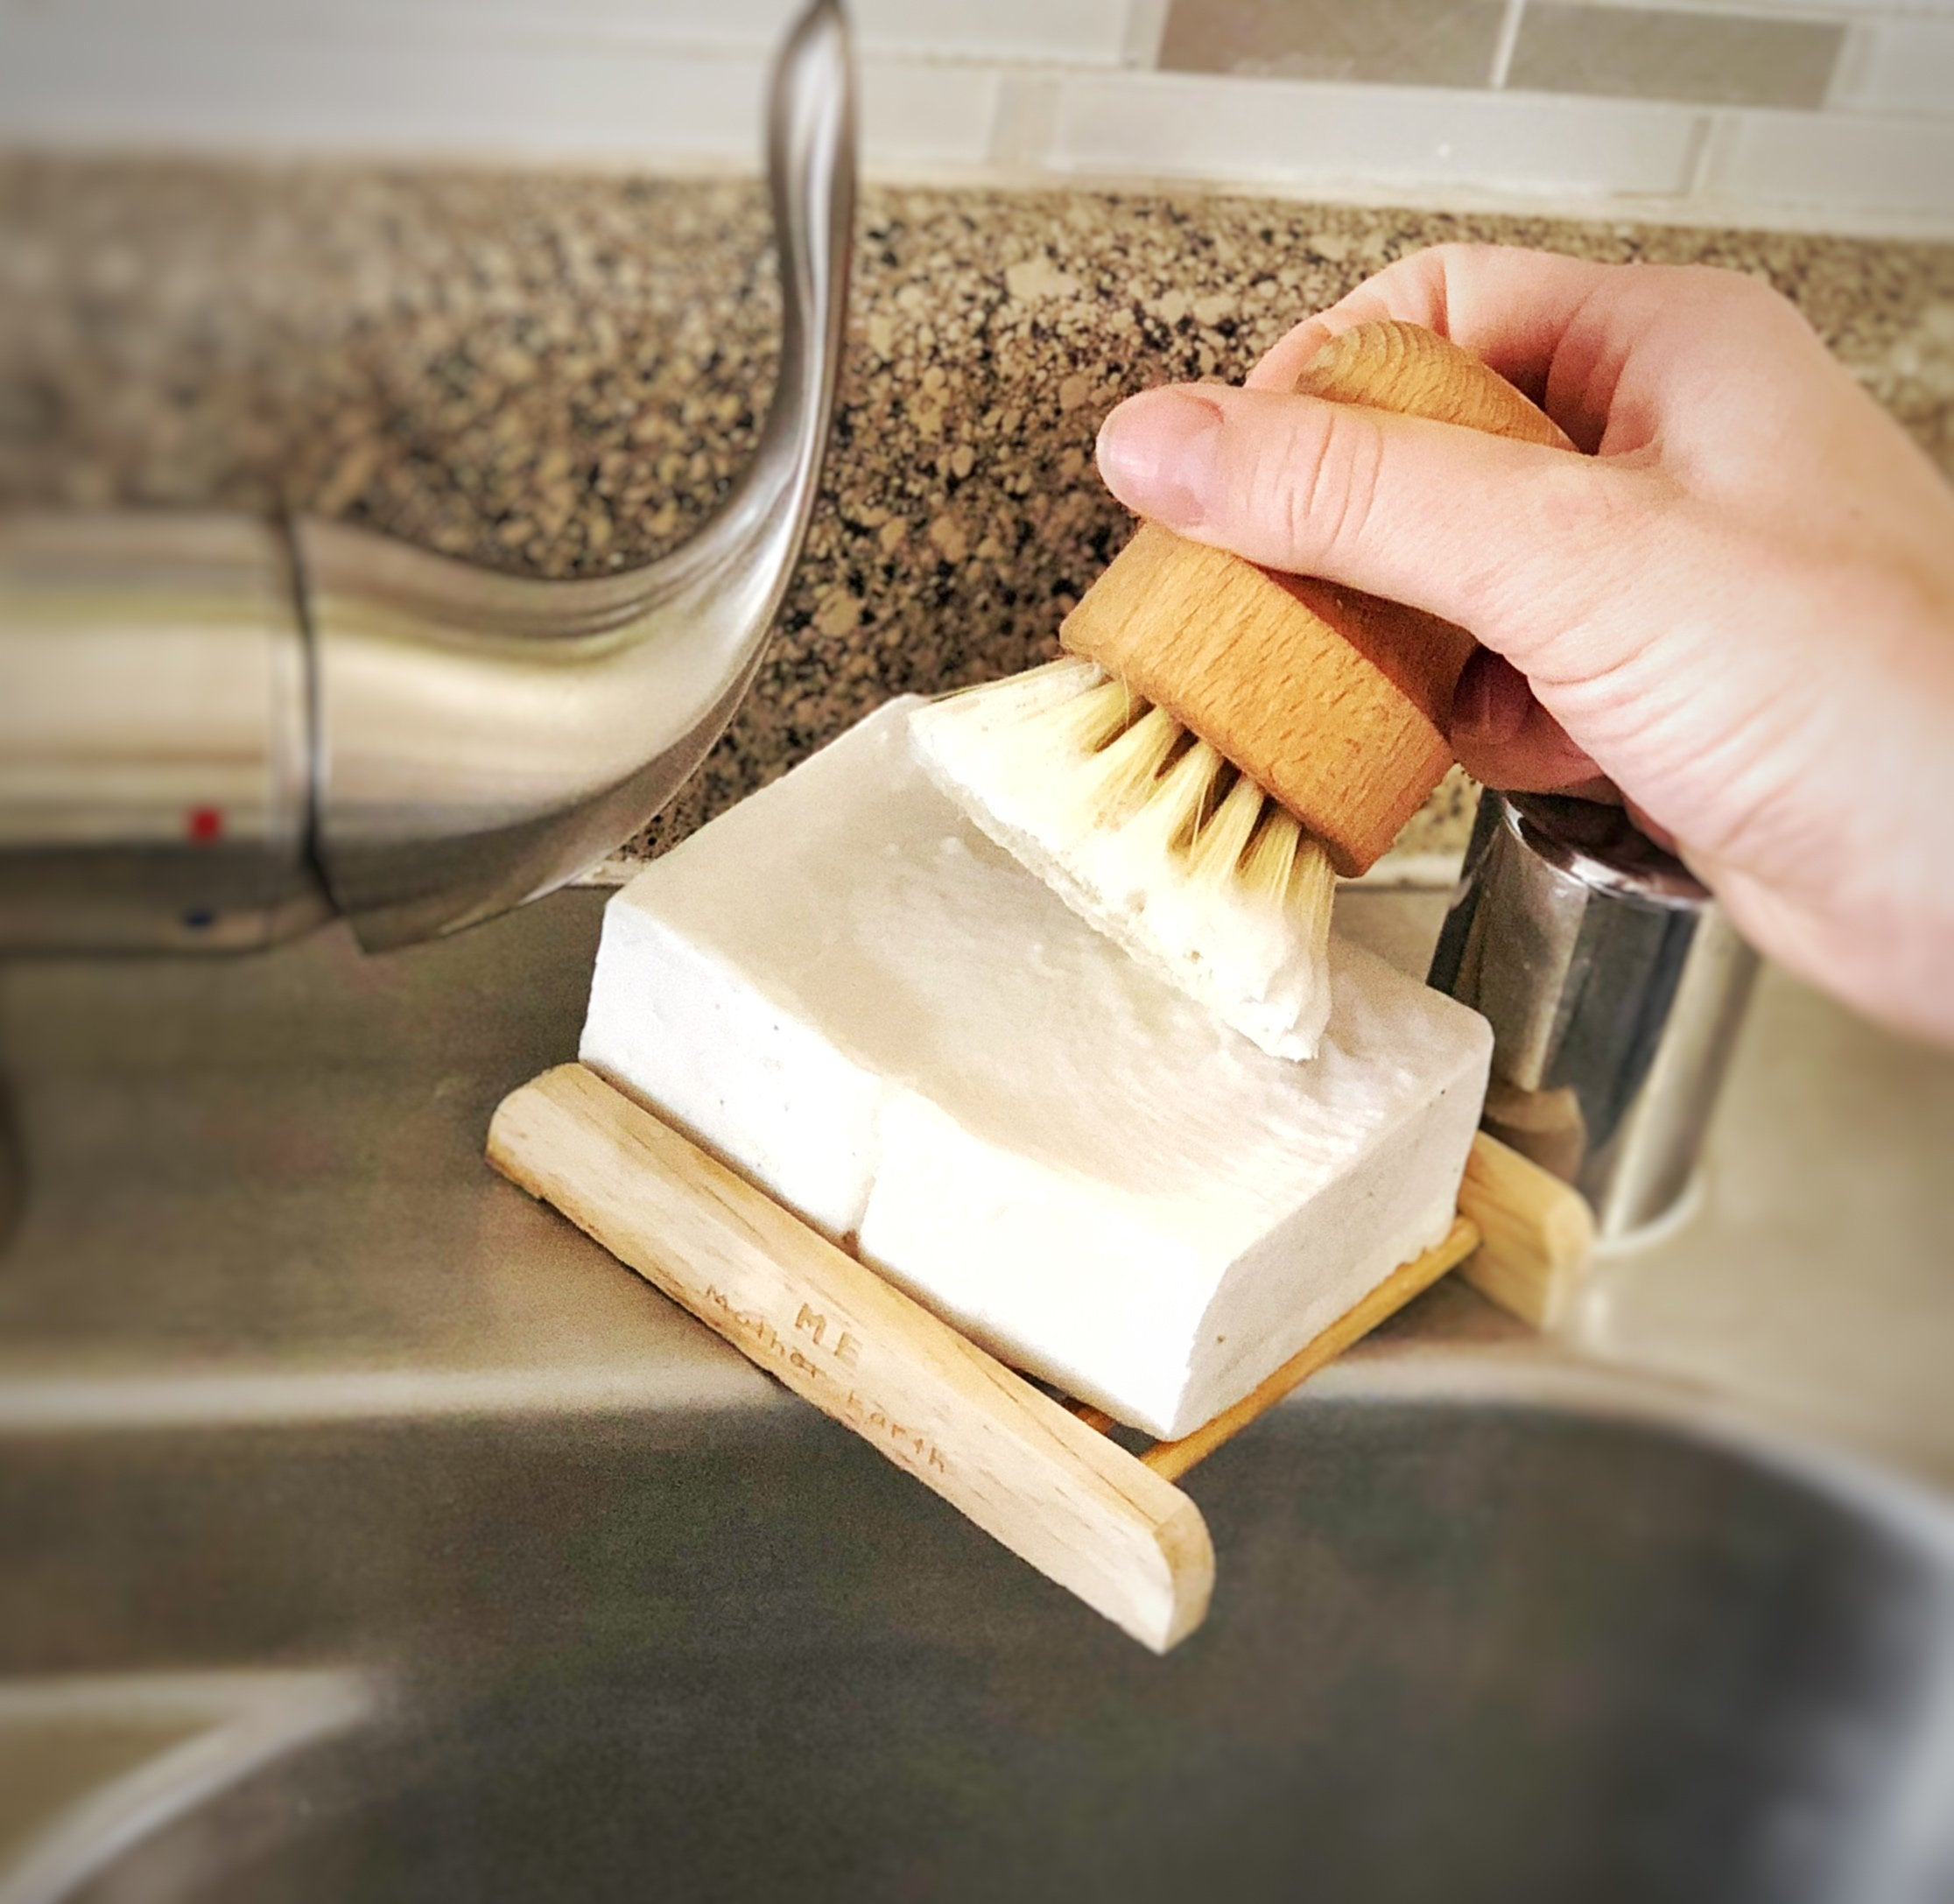 cleaning brush with soap